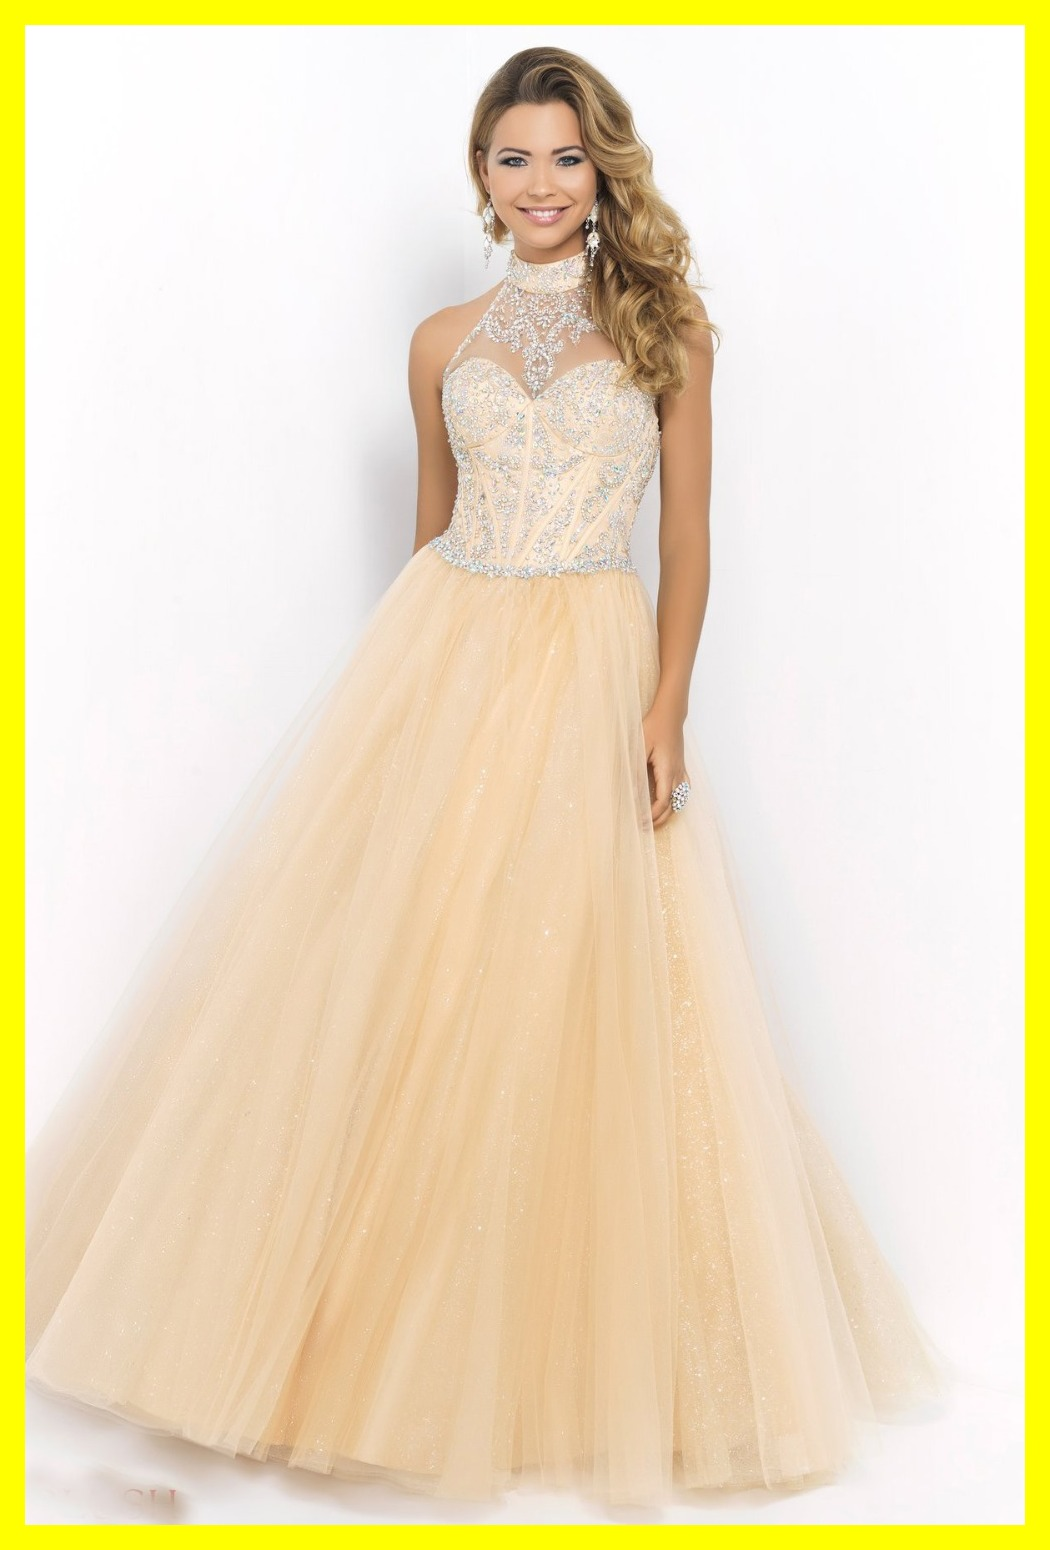 Prom dress clearance kids | Fashion dresses lab